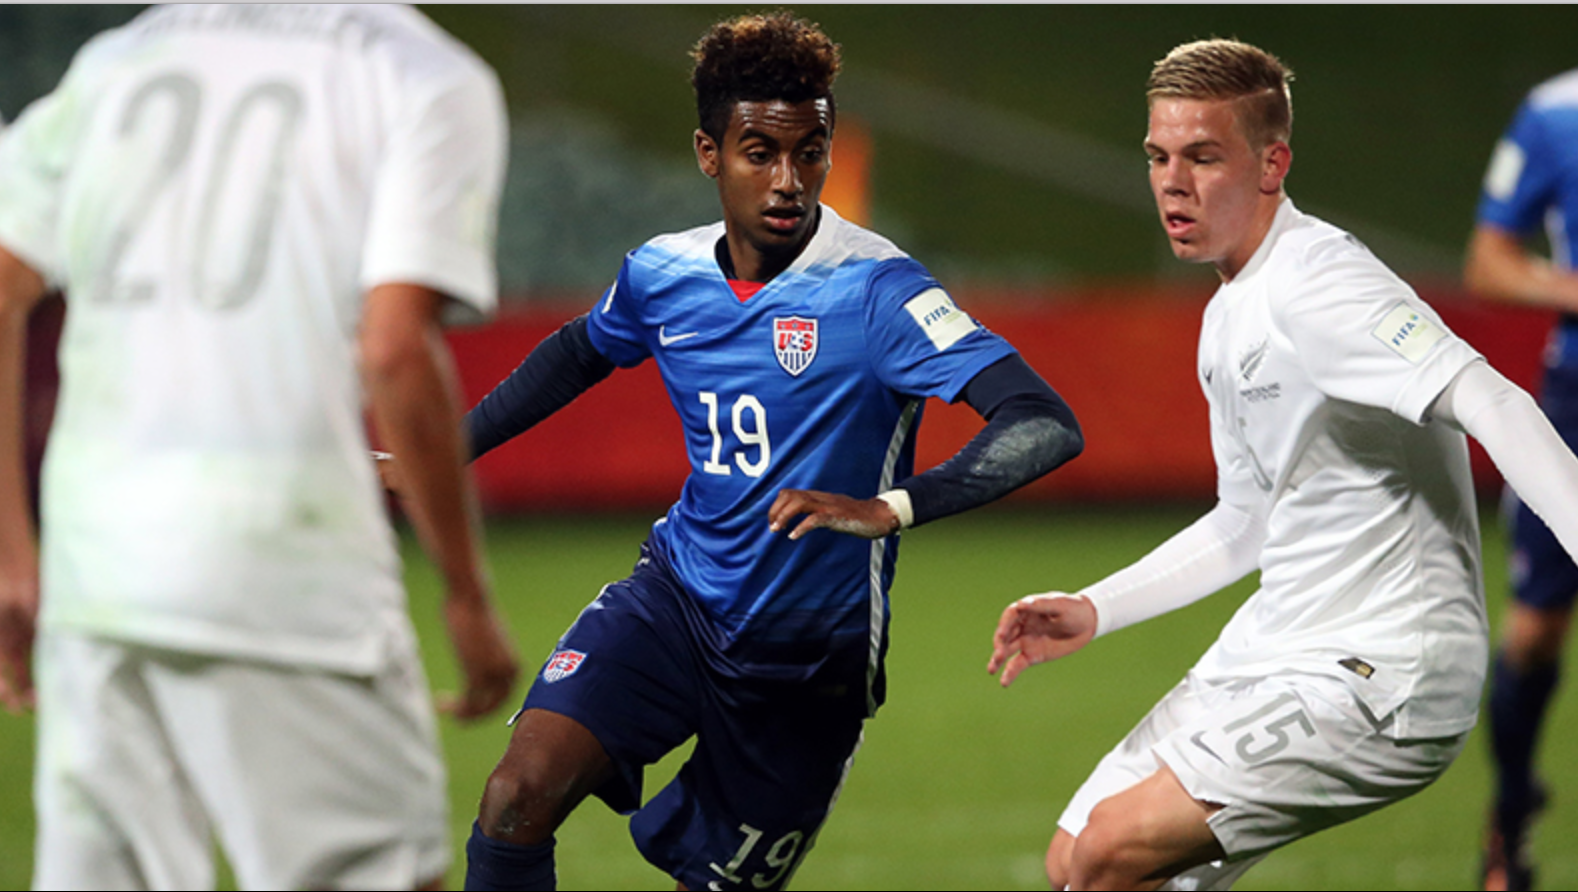 Gedion Zelalem: Wowing at the U-20 World Cup